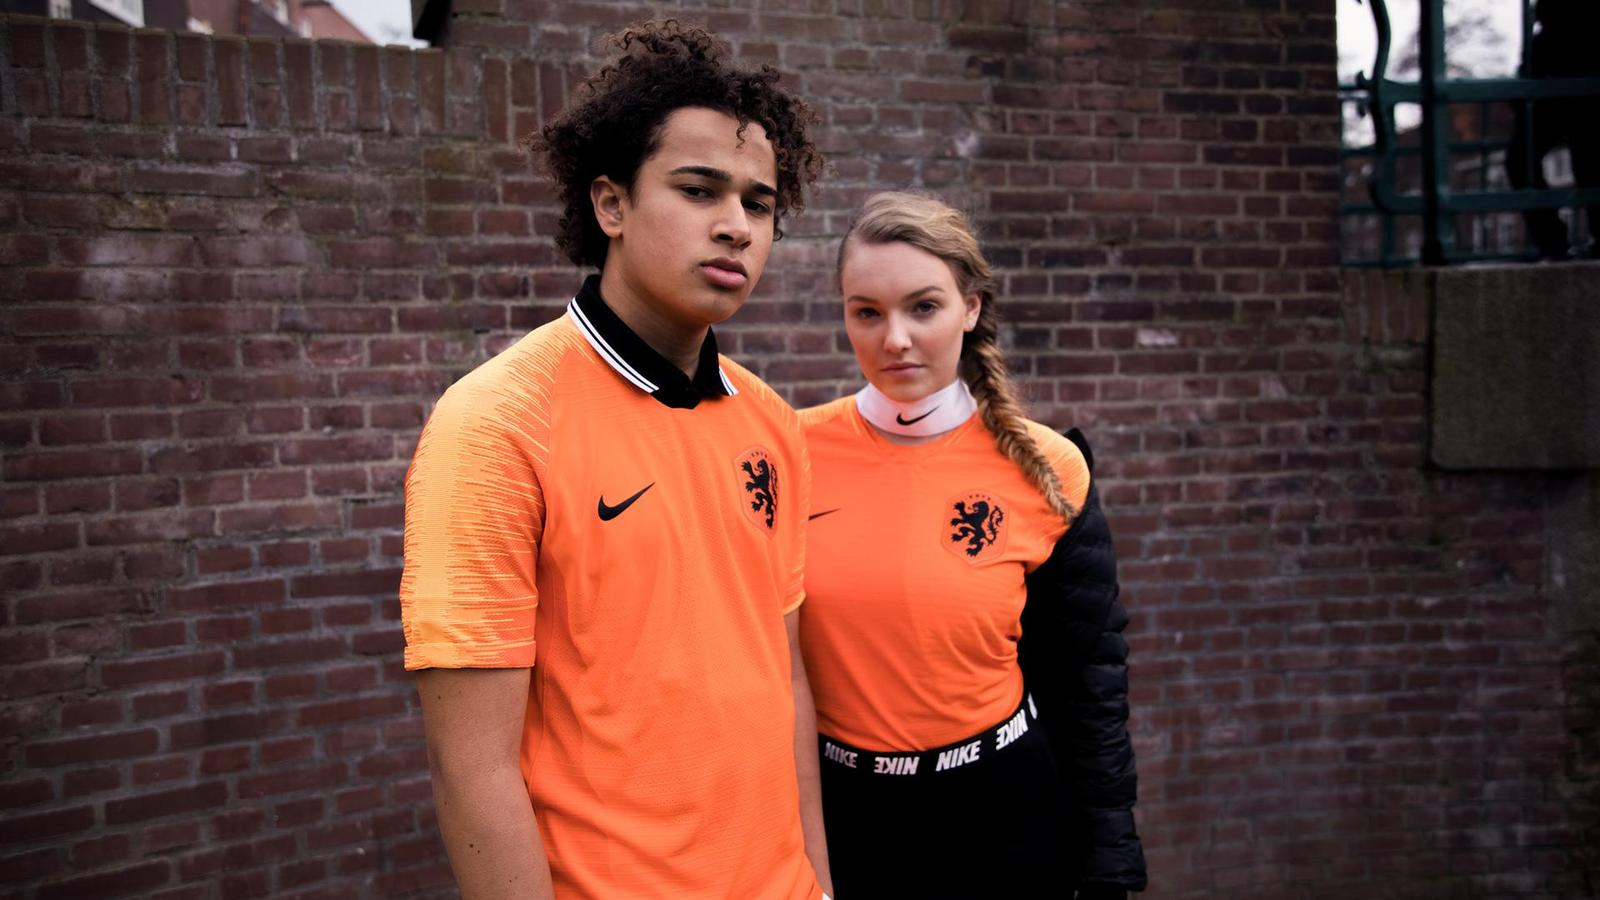 lowest price 43bb7 0b5bf The Netherlands 2018/19 Kit by Nike Has Been Revealed